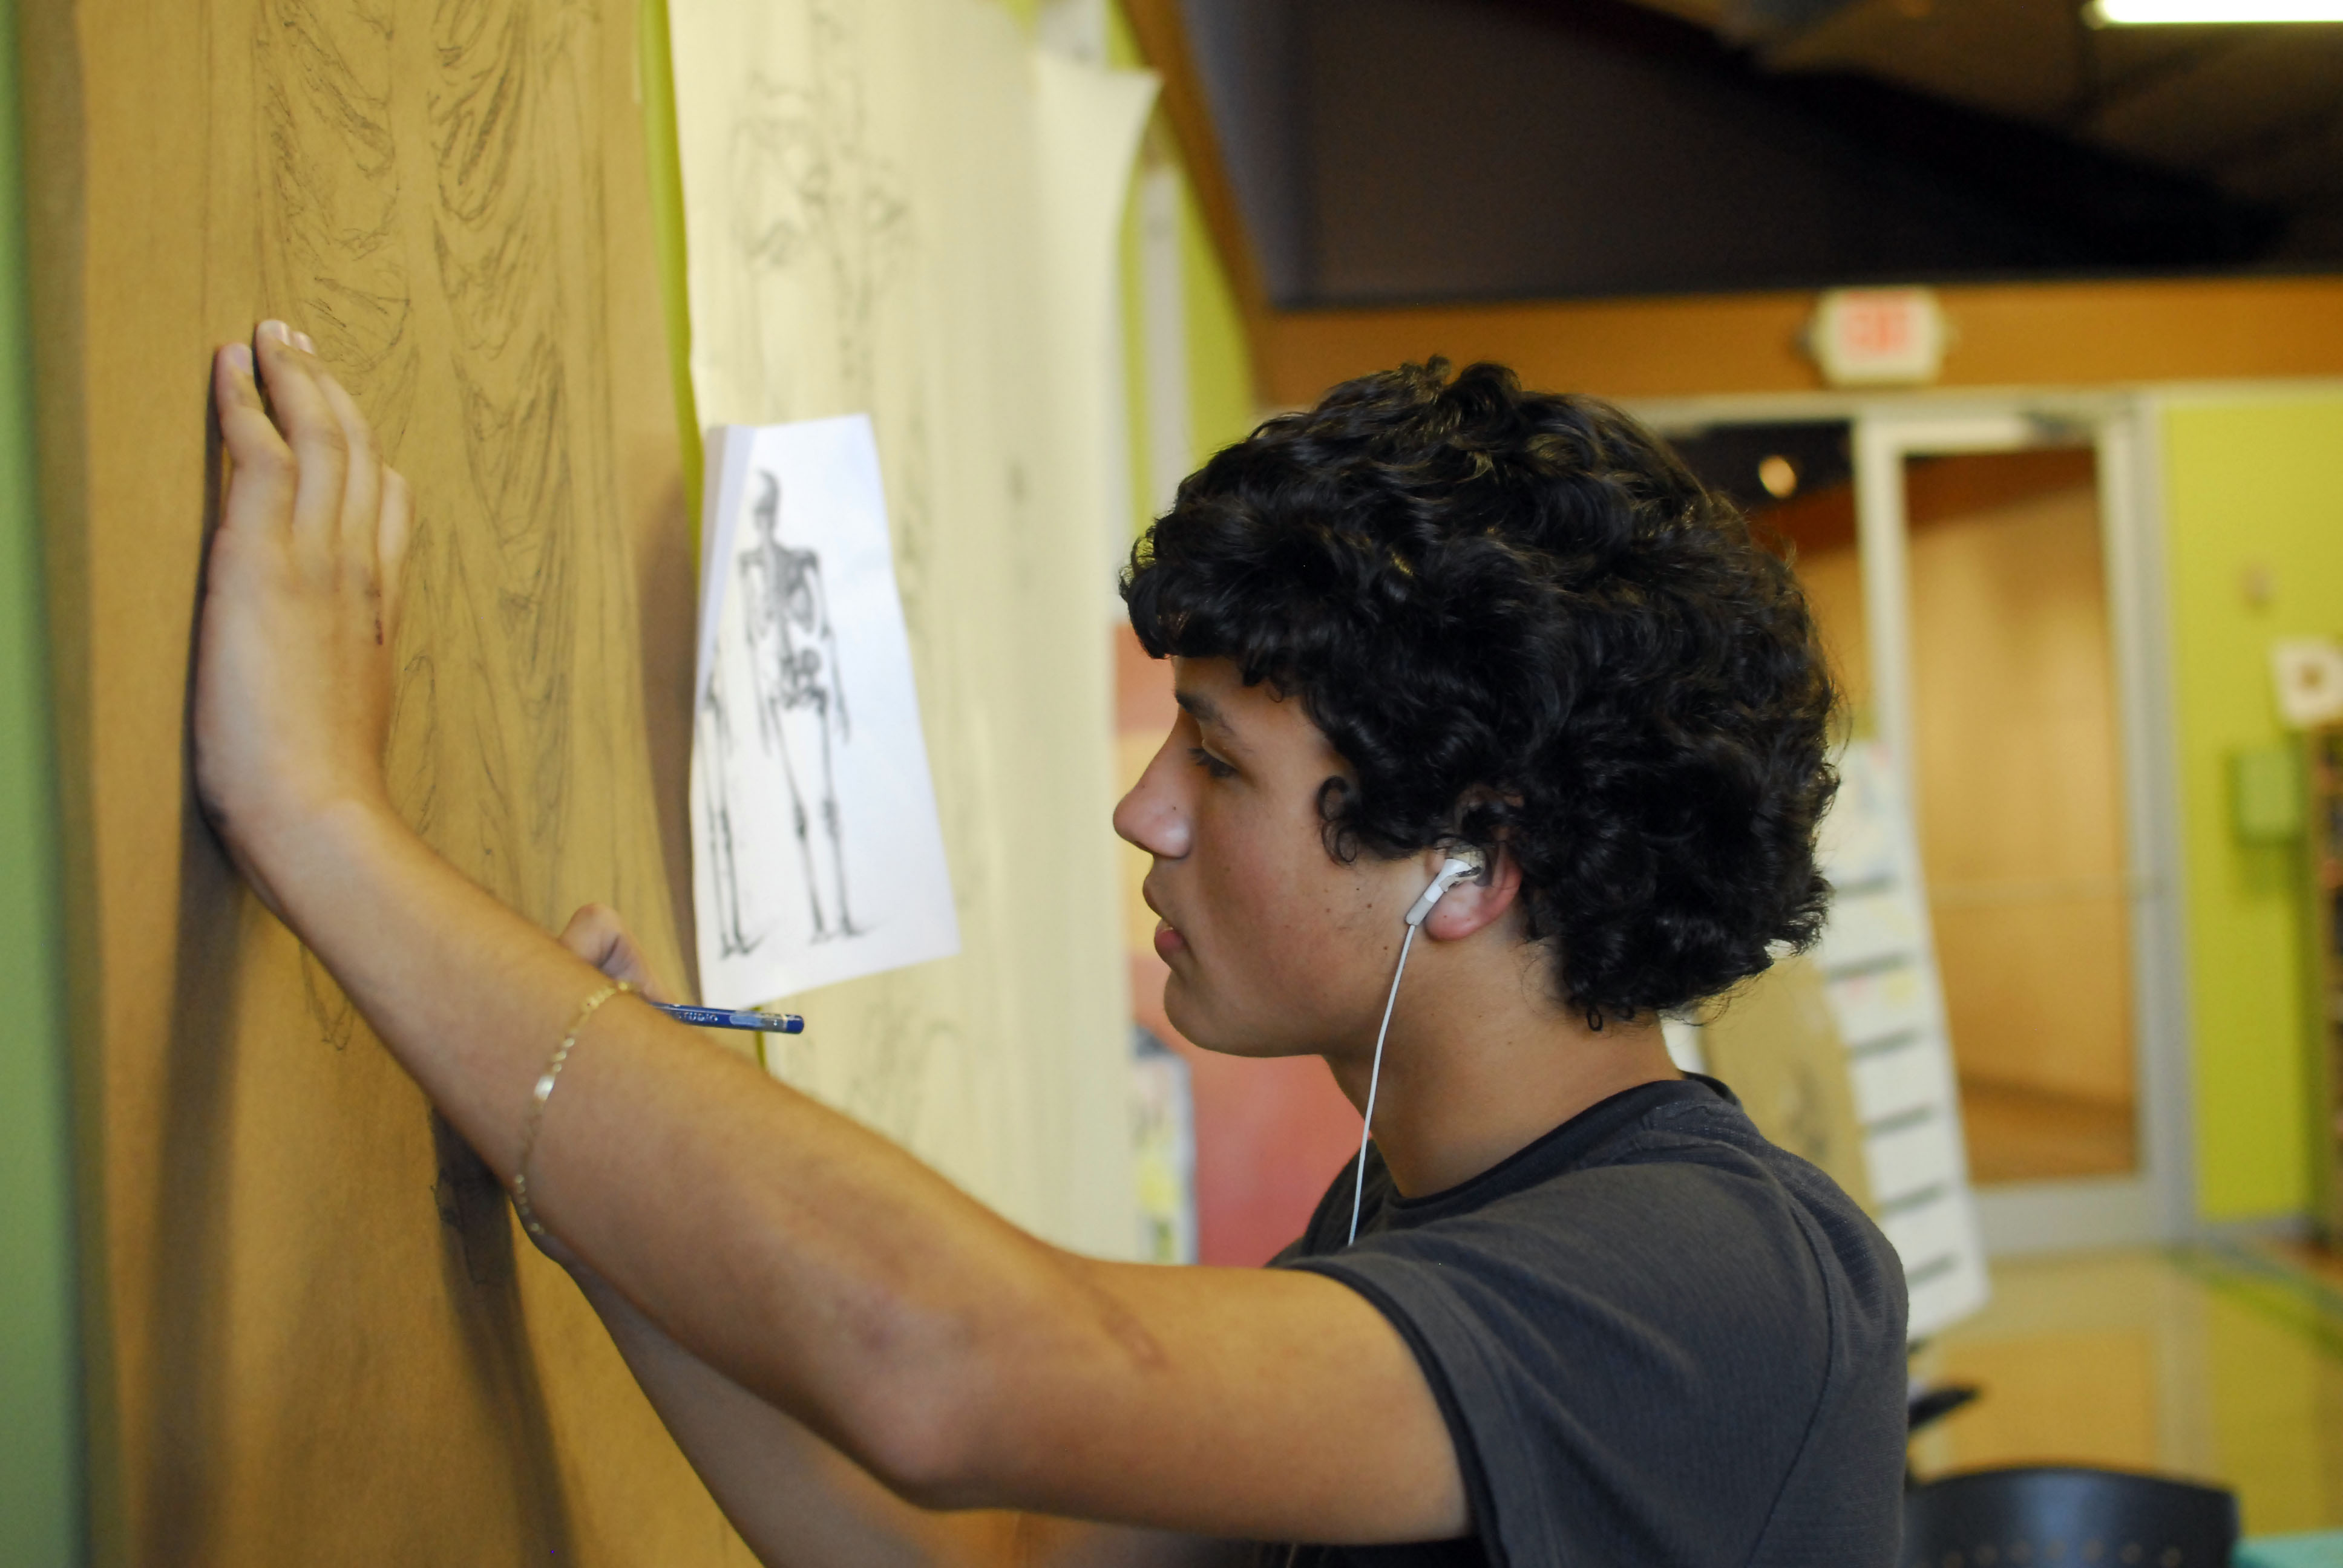 Young man making art on a wall